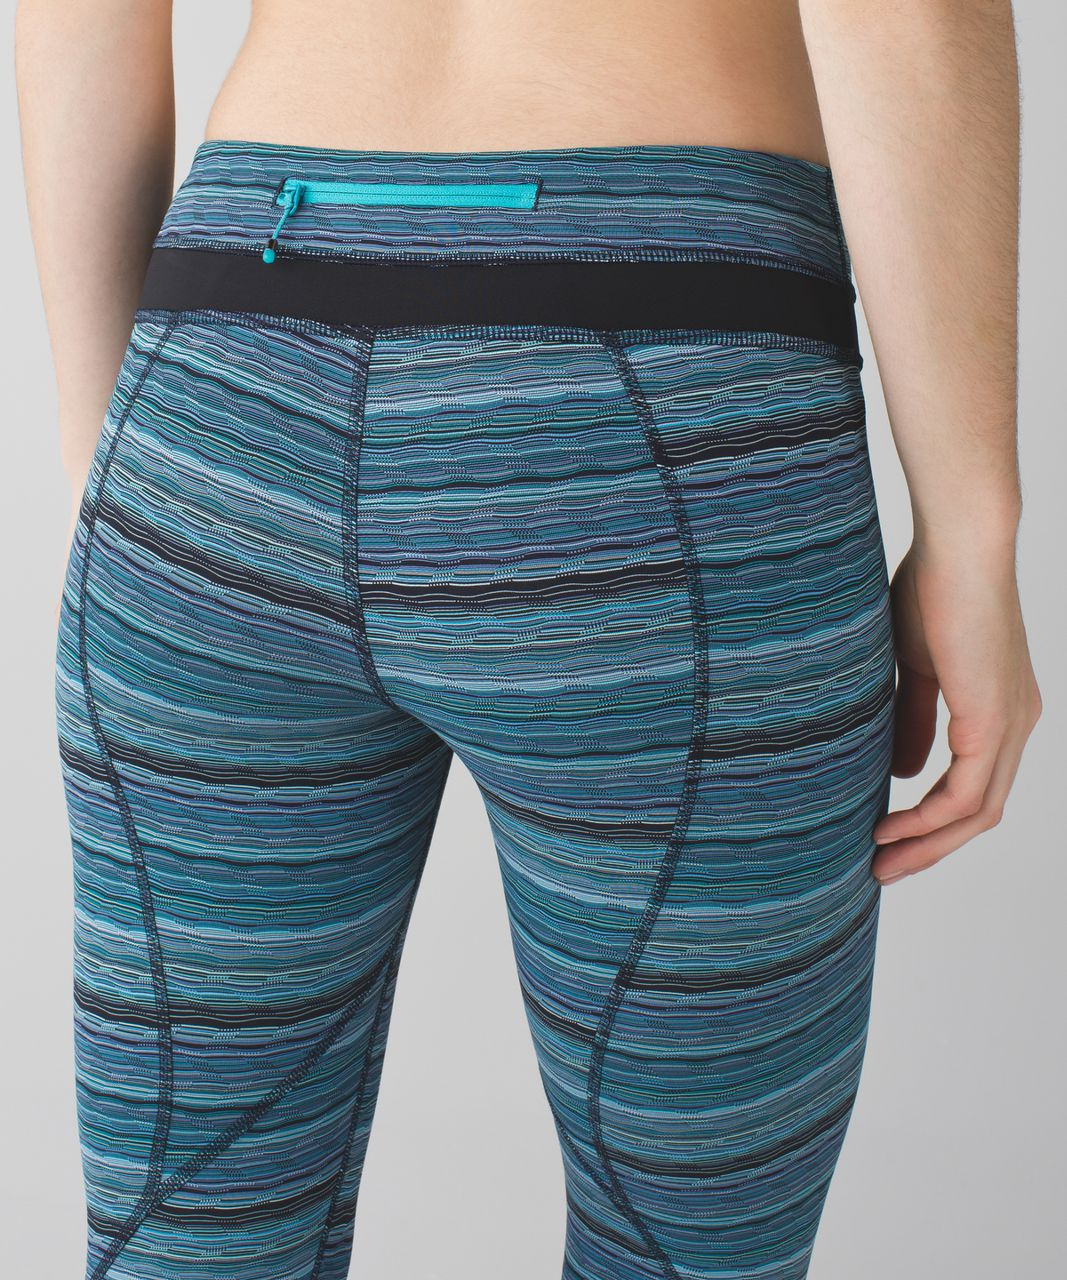 Lululemon Run:  Inspire Crop II *All Luxtreme - Space Dye Twist Naval Blue Peacock Blue / Black